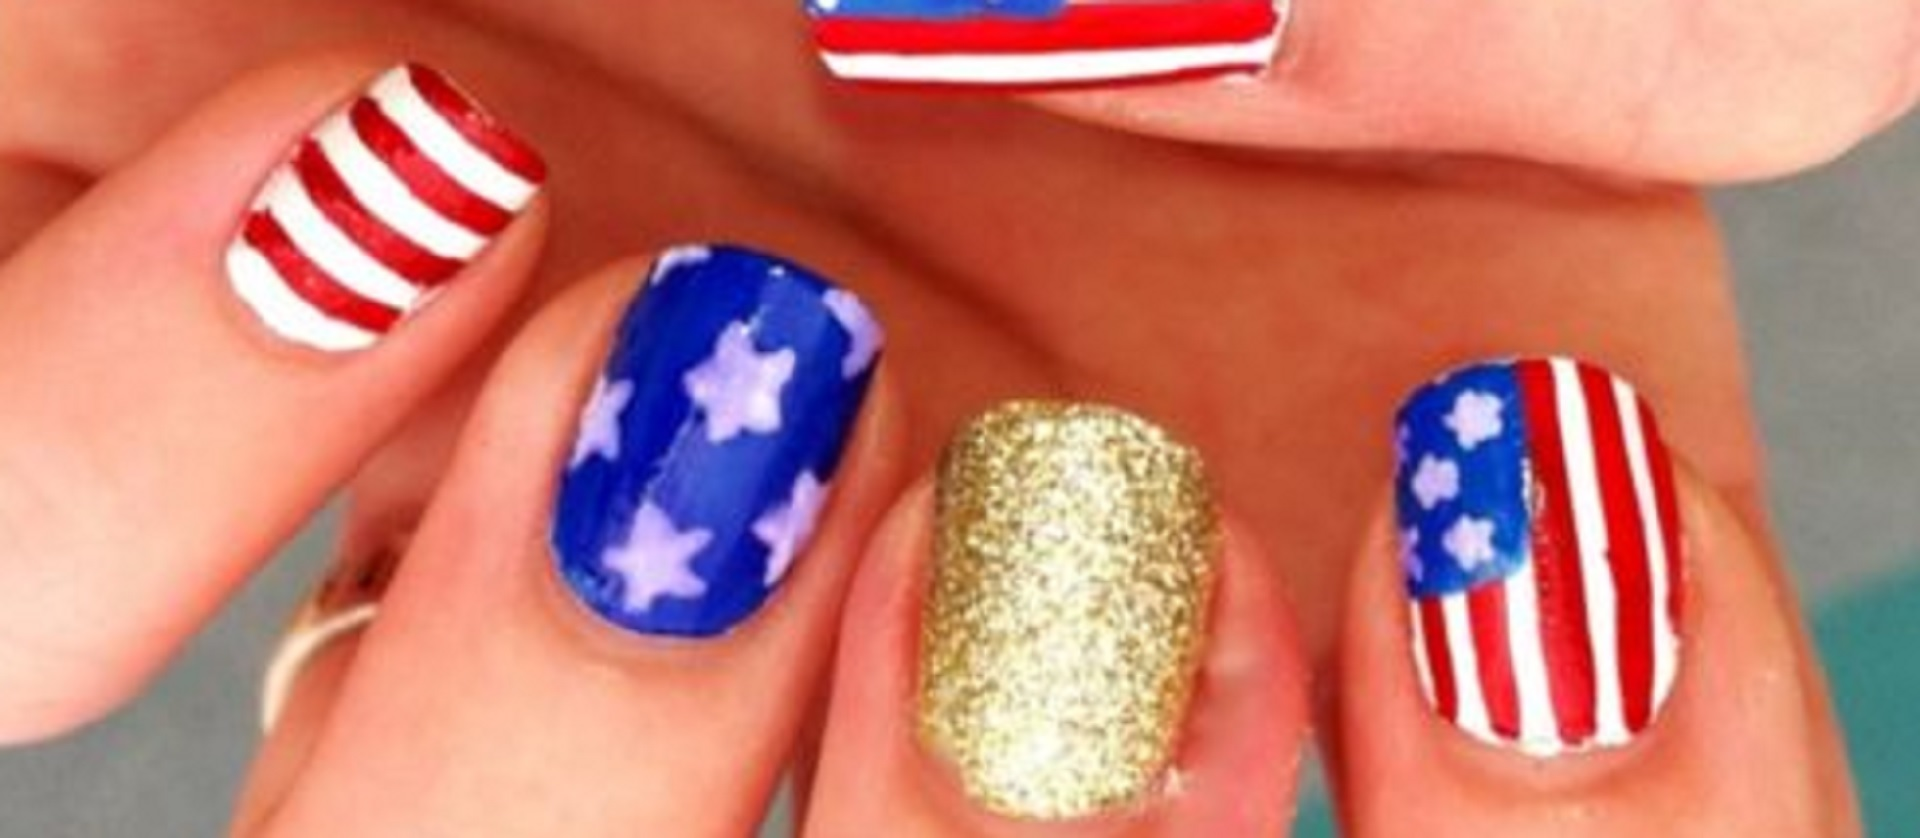 Best nail salon near me find one in a city near you - Nail salons close by ...